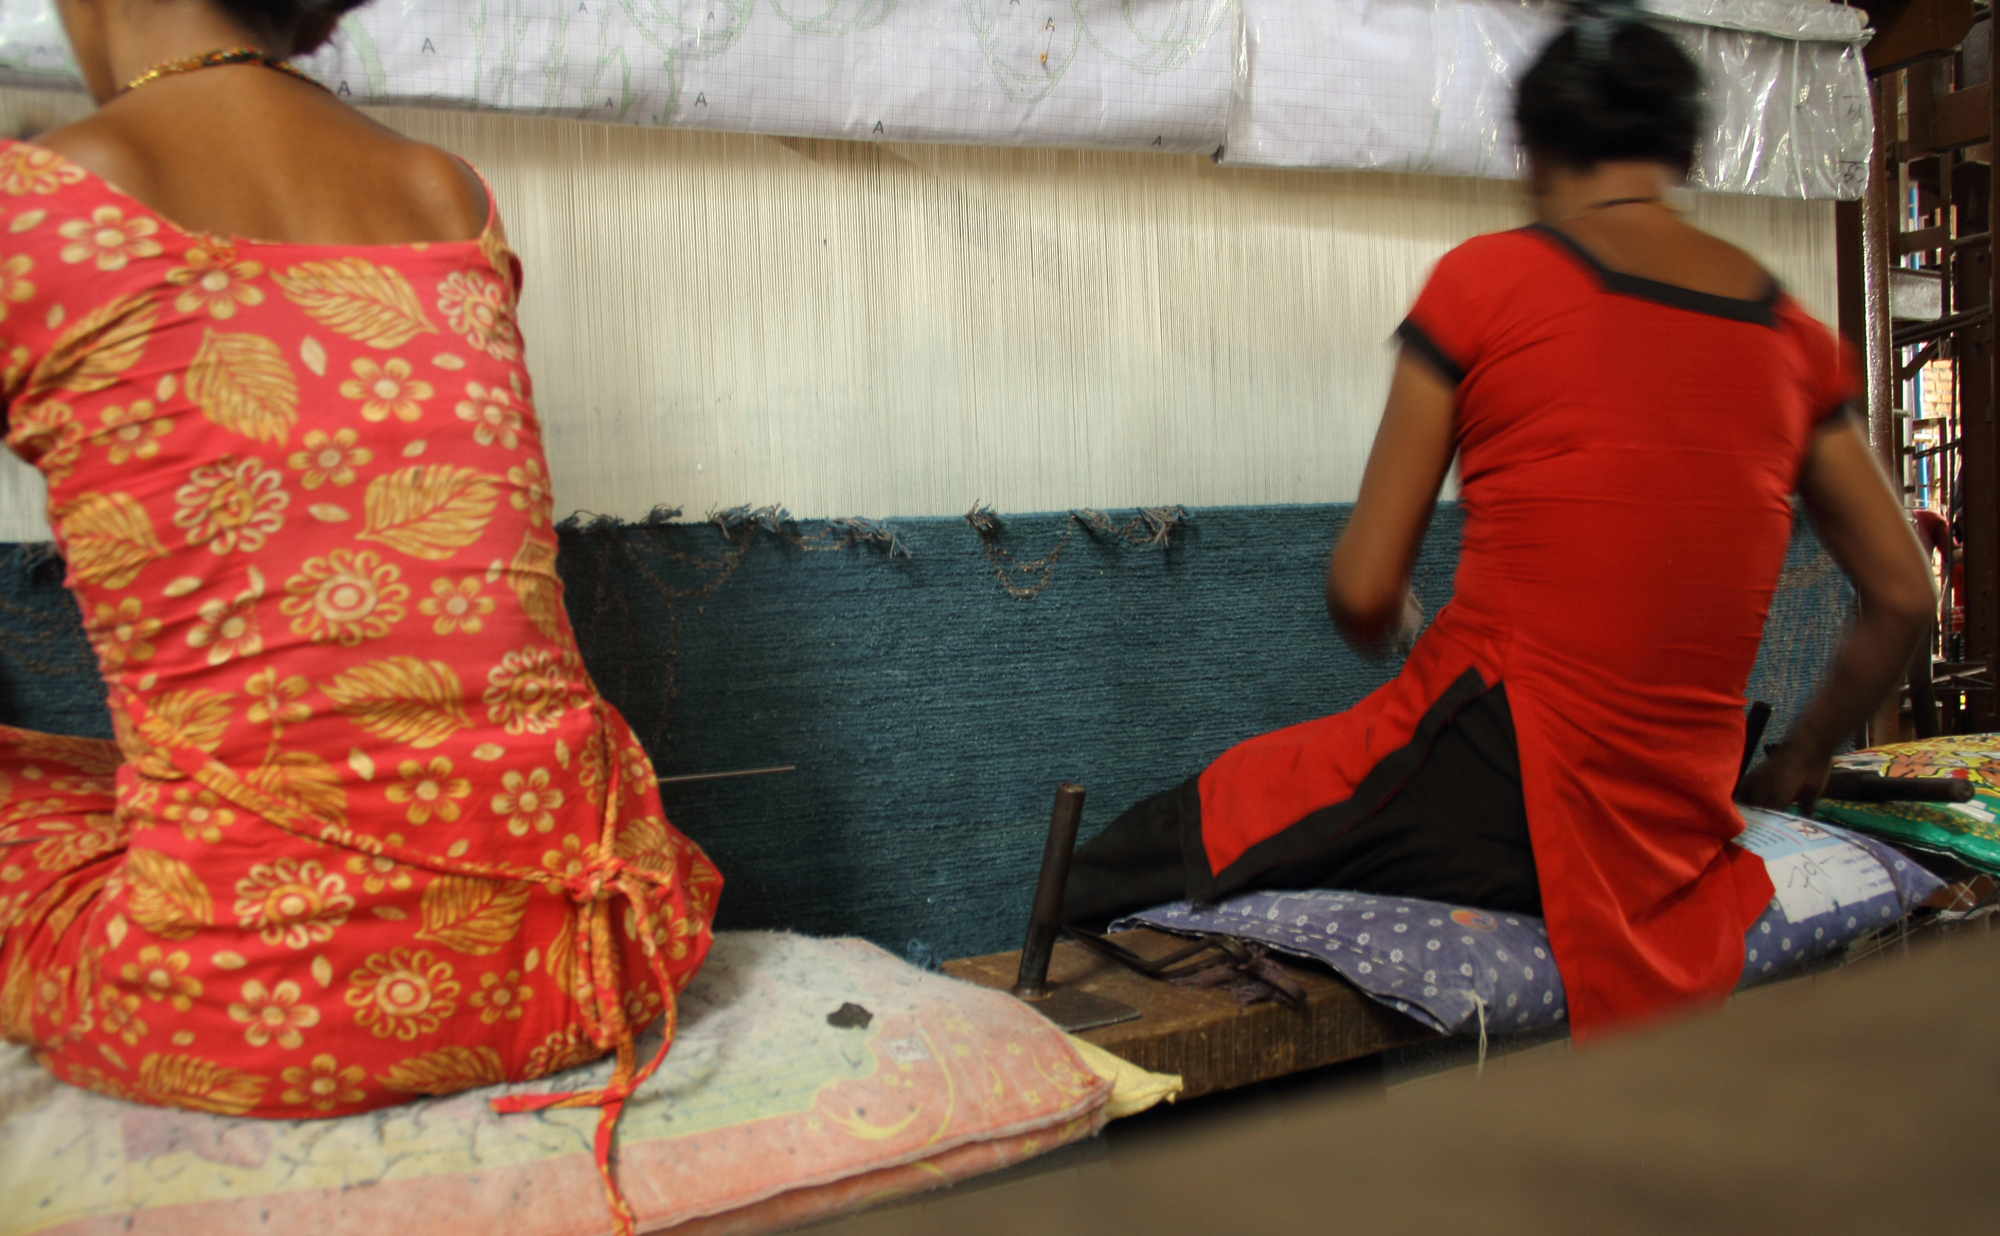 'Asian Quilt' by Kooches is shown on-loom in Kathmandu being woven by two (2) Nepali women. Note the cartoon (design plate) on the loom (at the top of the image) which has the carpet design w/colour references drawn out allowing the weavers to accurately translate the design from concept to reality. | Image courtesy of Kooches.